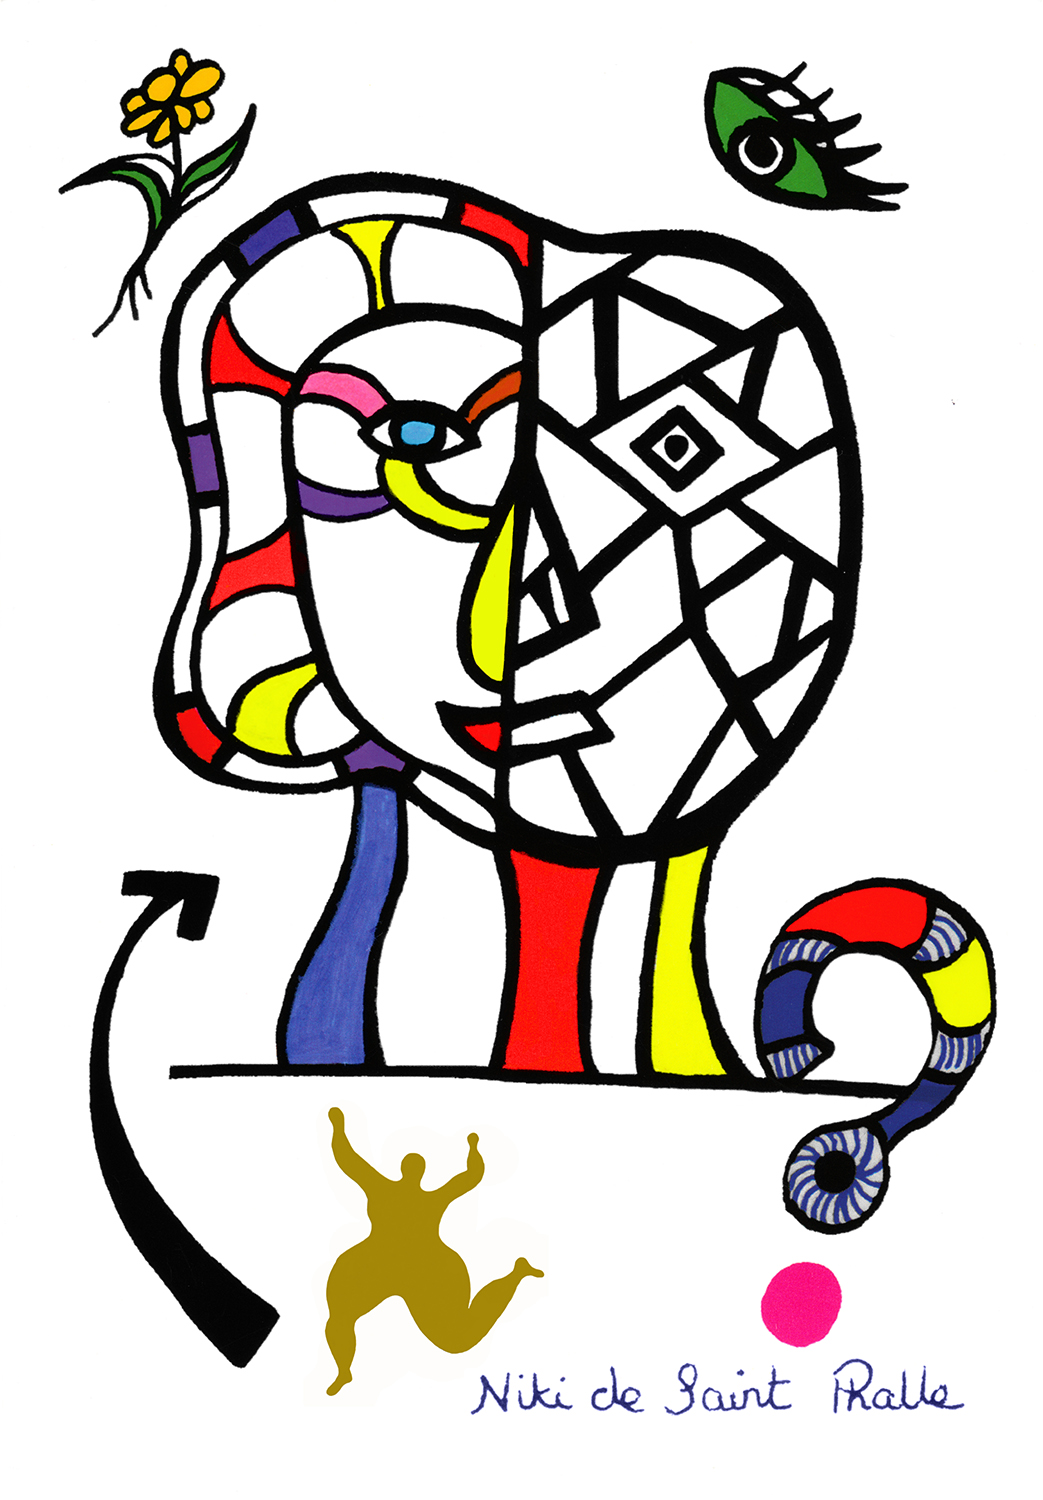 """A colorful drawing of the sculpture titled """"Coming Together"""" with a flower, and eye, an arrow, a dancing Nana and a question mark surrounding it. The signature of the artist is below the design. This is the invitation to the dedication ceremony of the public sculpture."""